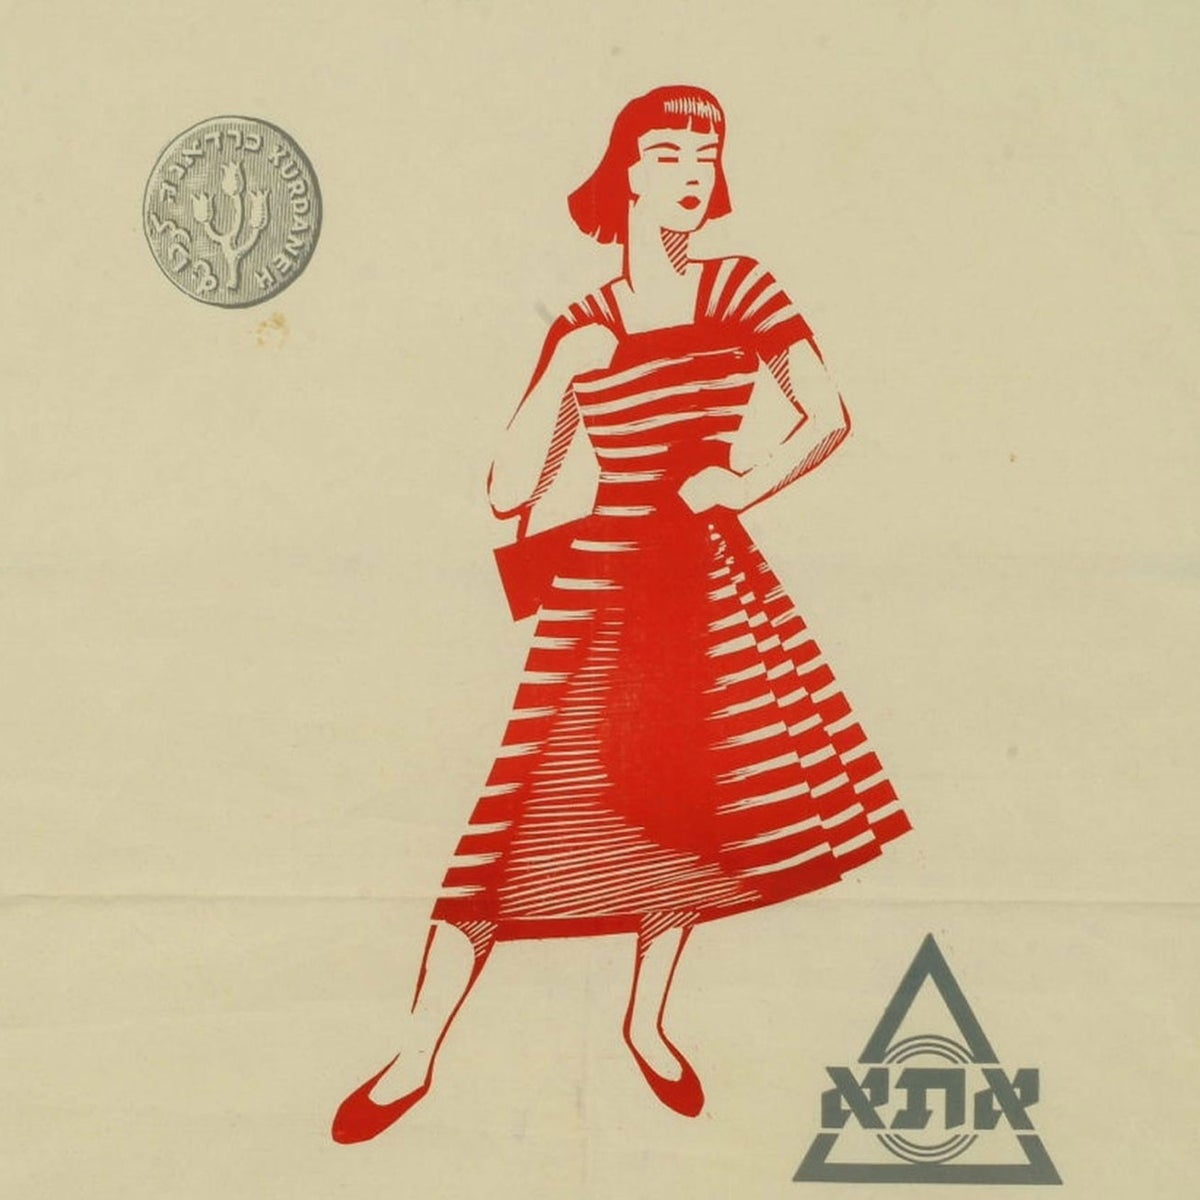 A poster for an Ata fashion show in the 1950s.